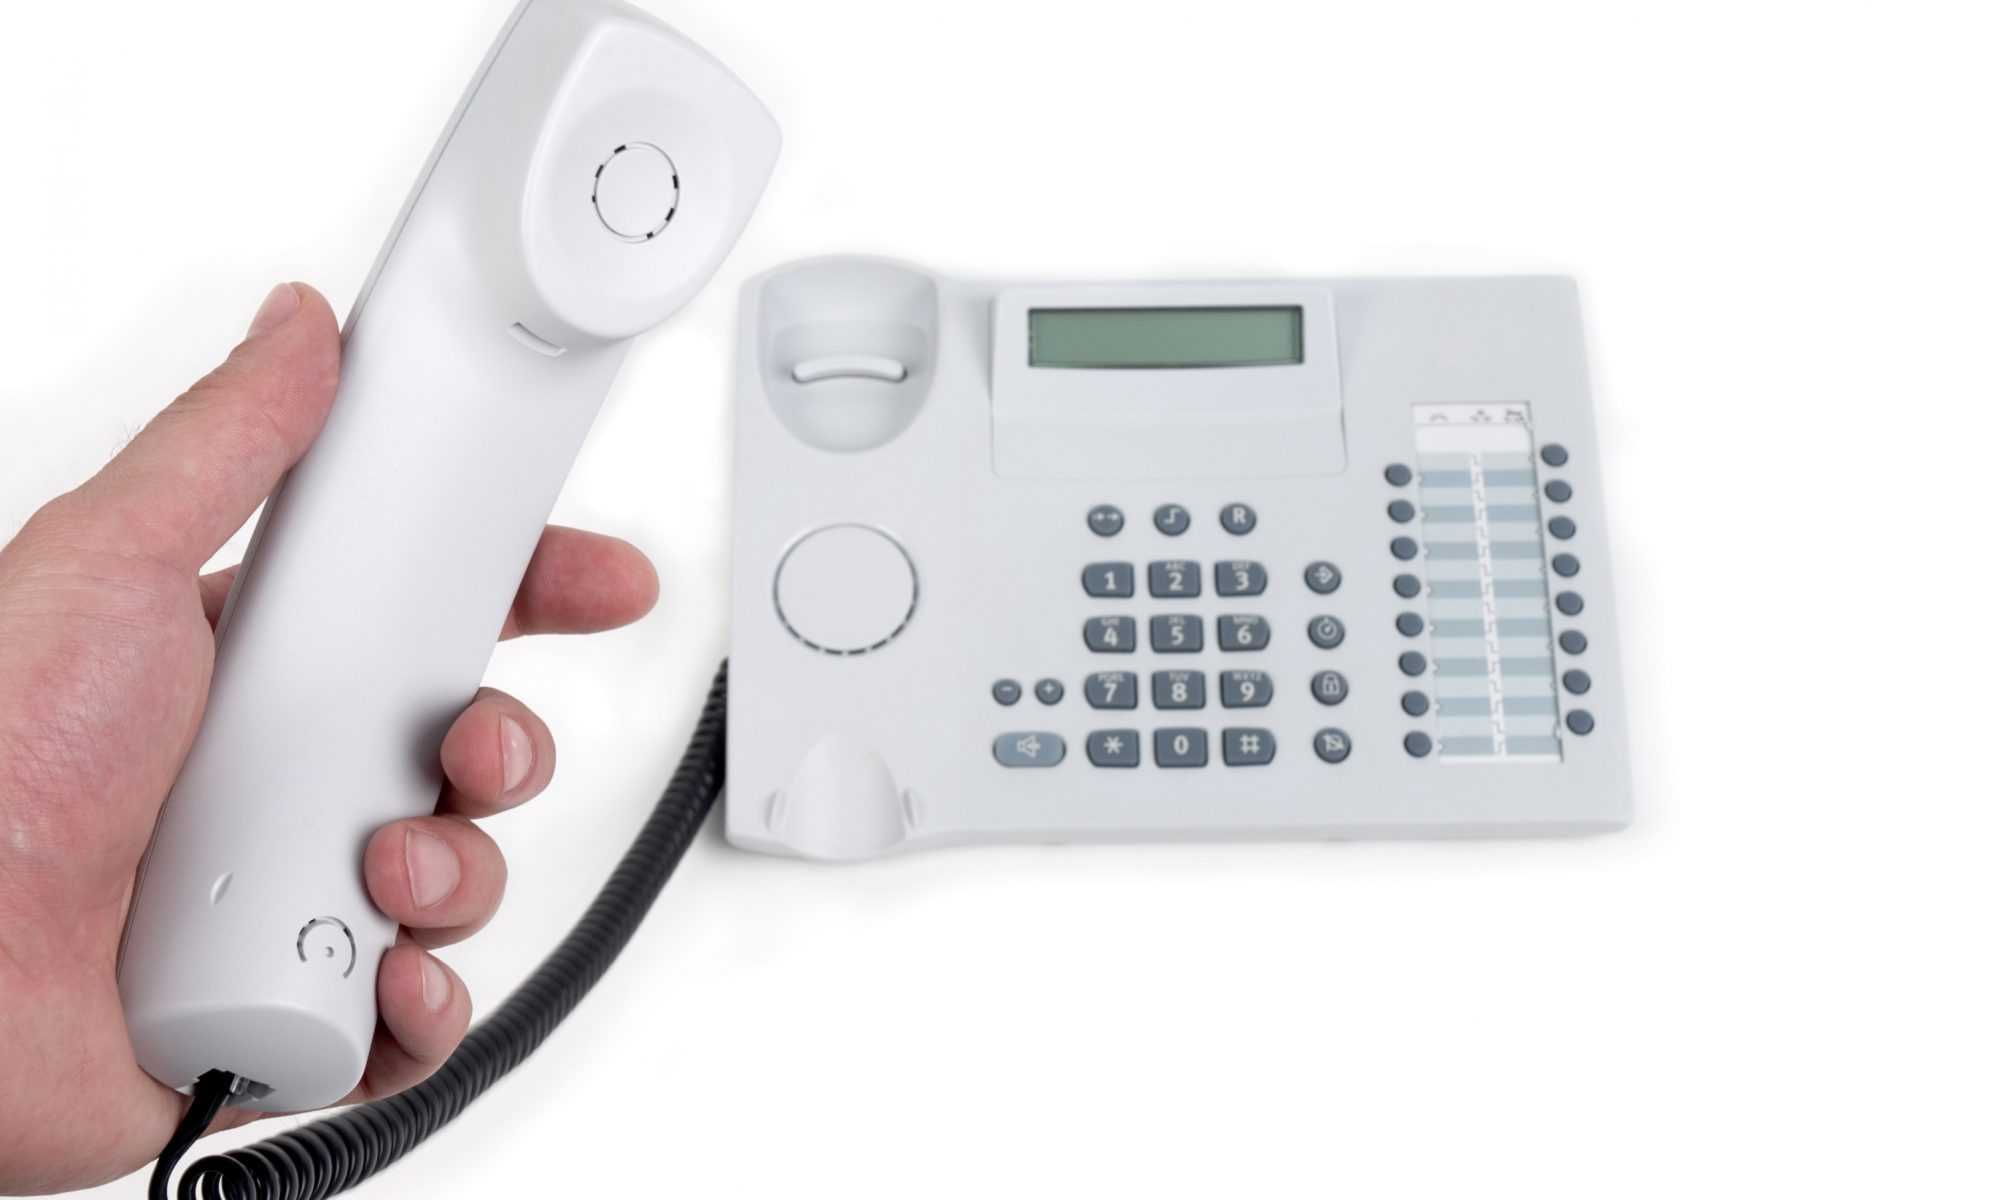 Hand holding a telephone receiver ready to make a call